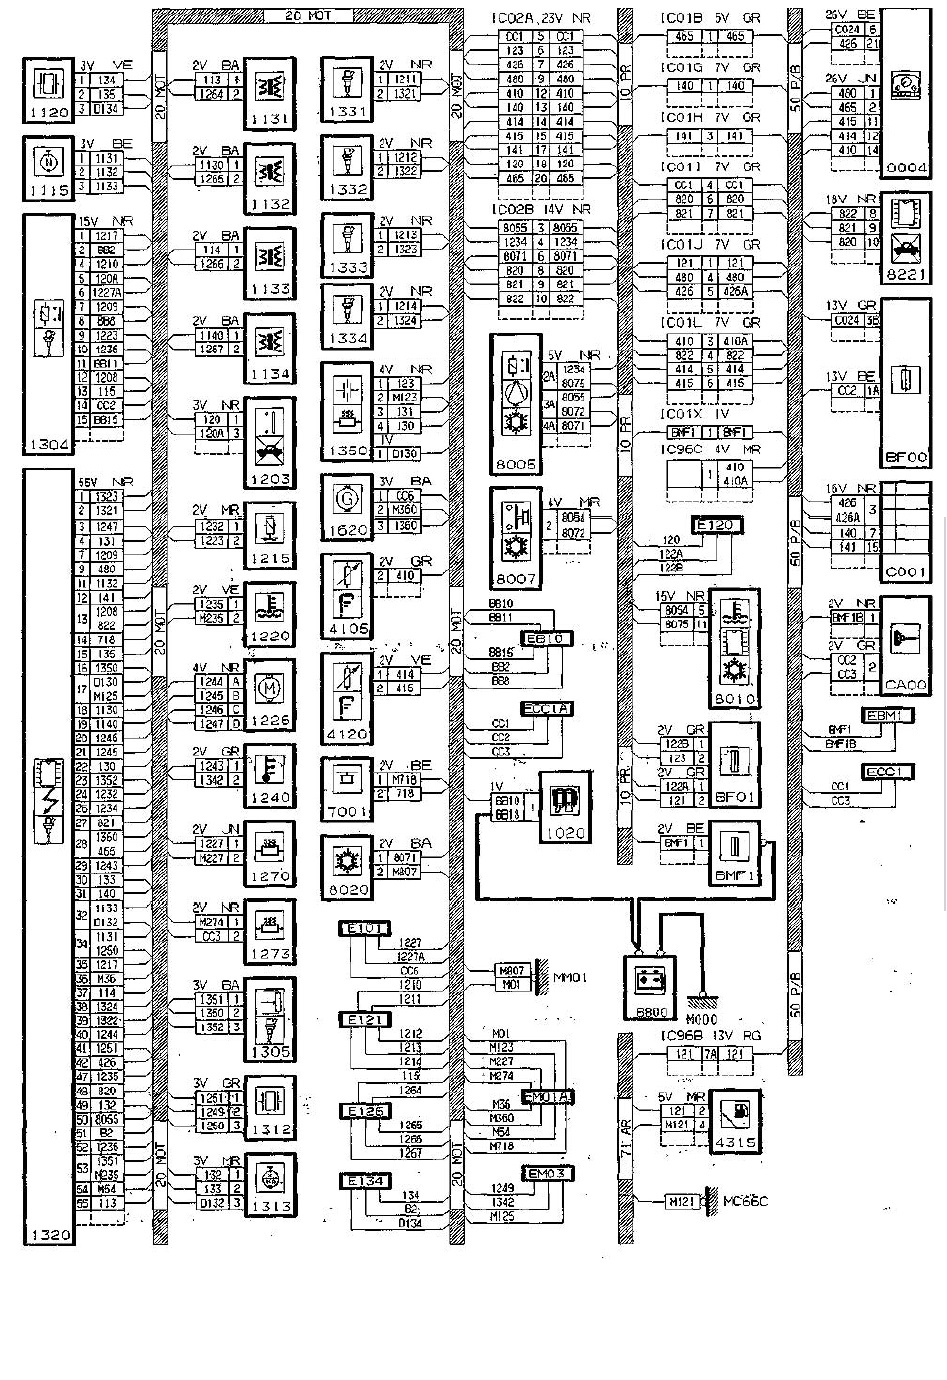 hight resolution of wiring diagram electrical forum peugeot 306 gti 6 rallye peugeot 306 gti 6 wiring diagram peugeot 306 gti 6 wiring diagram